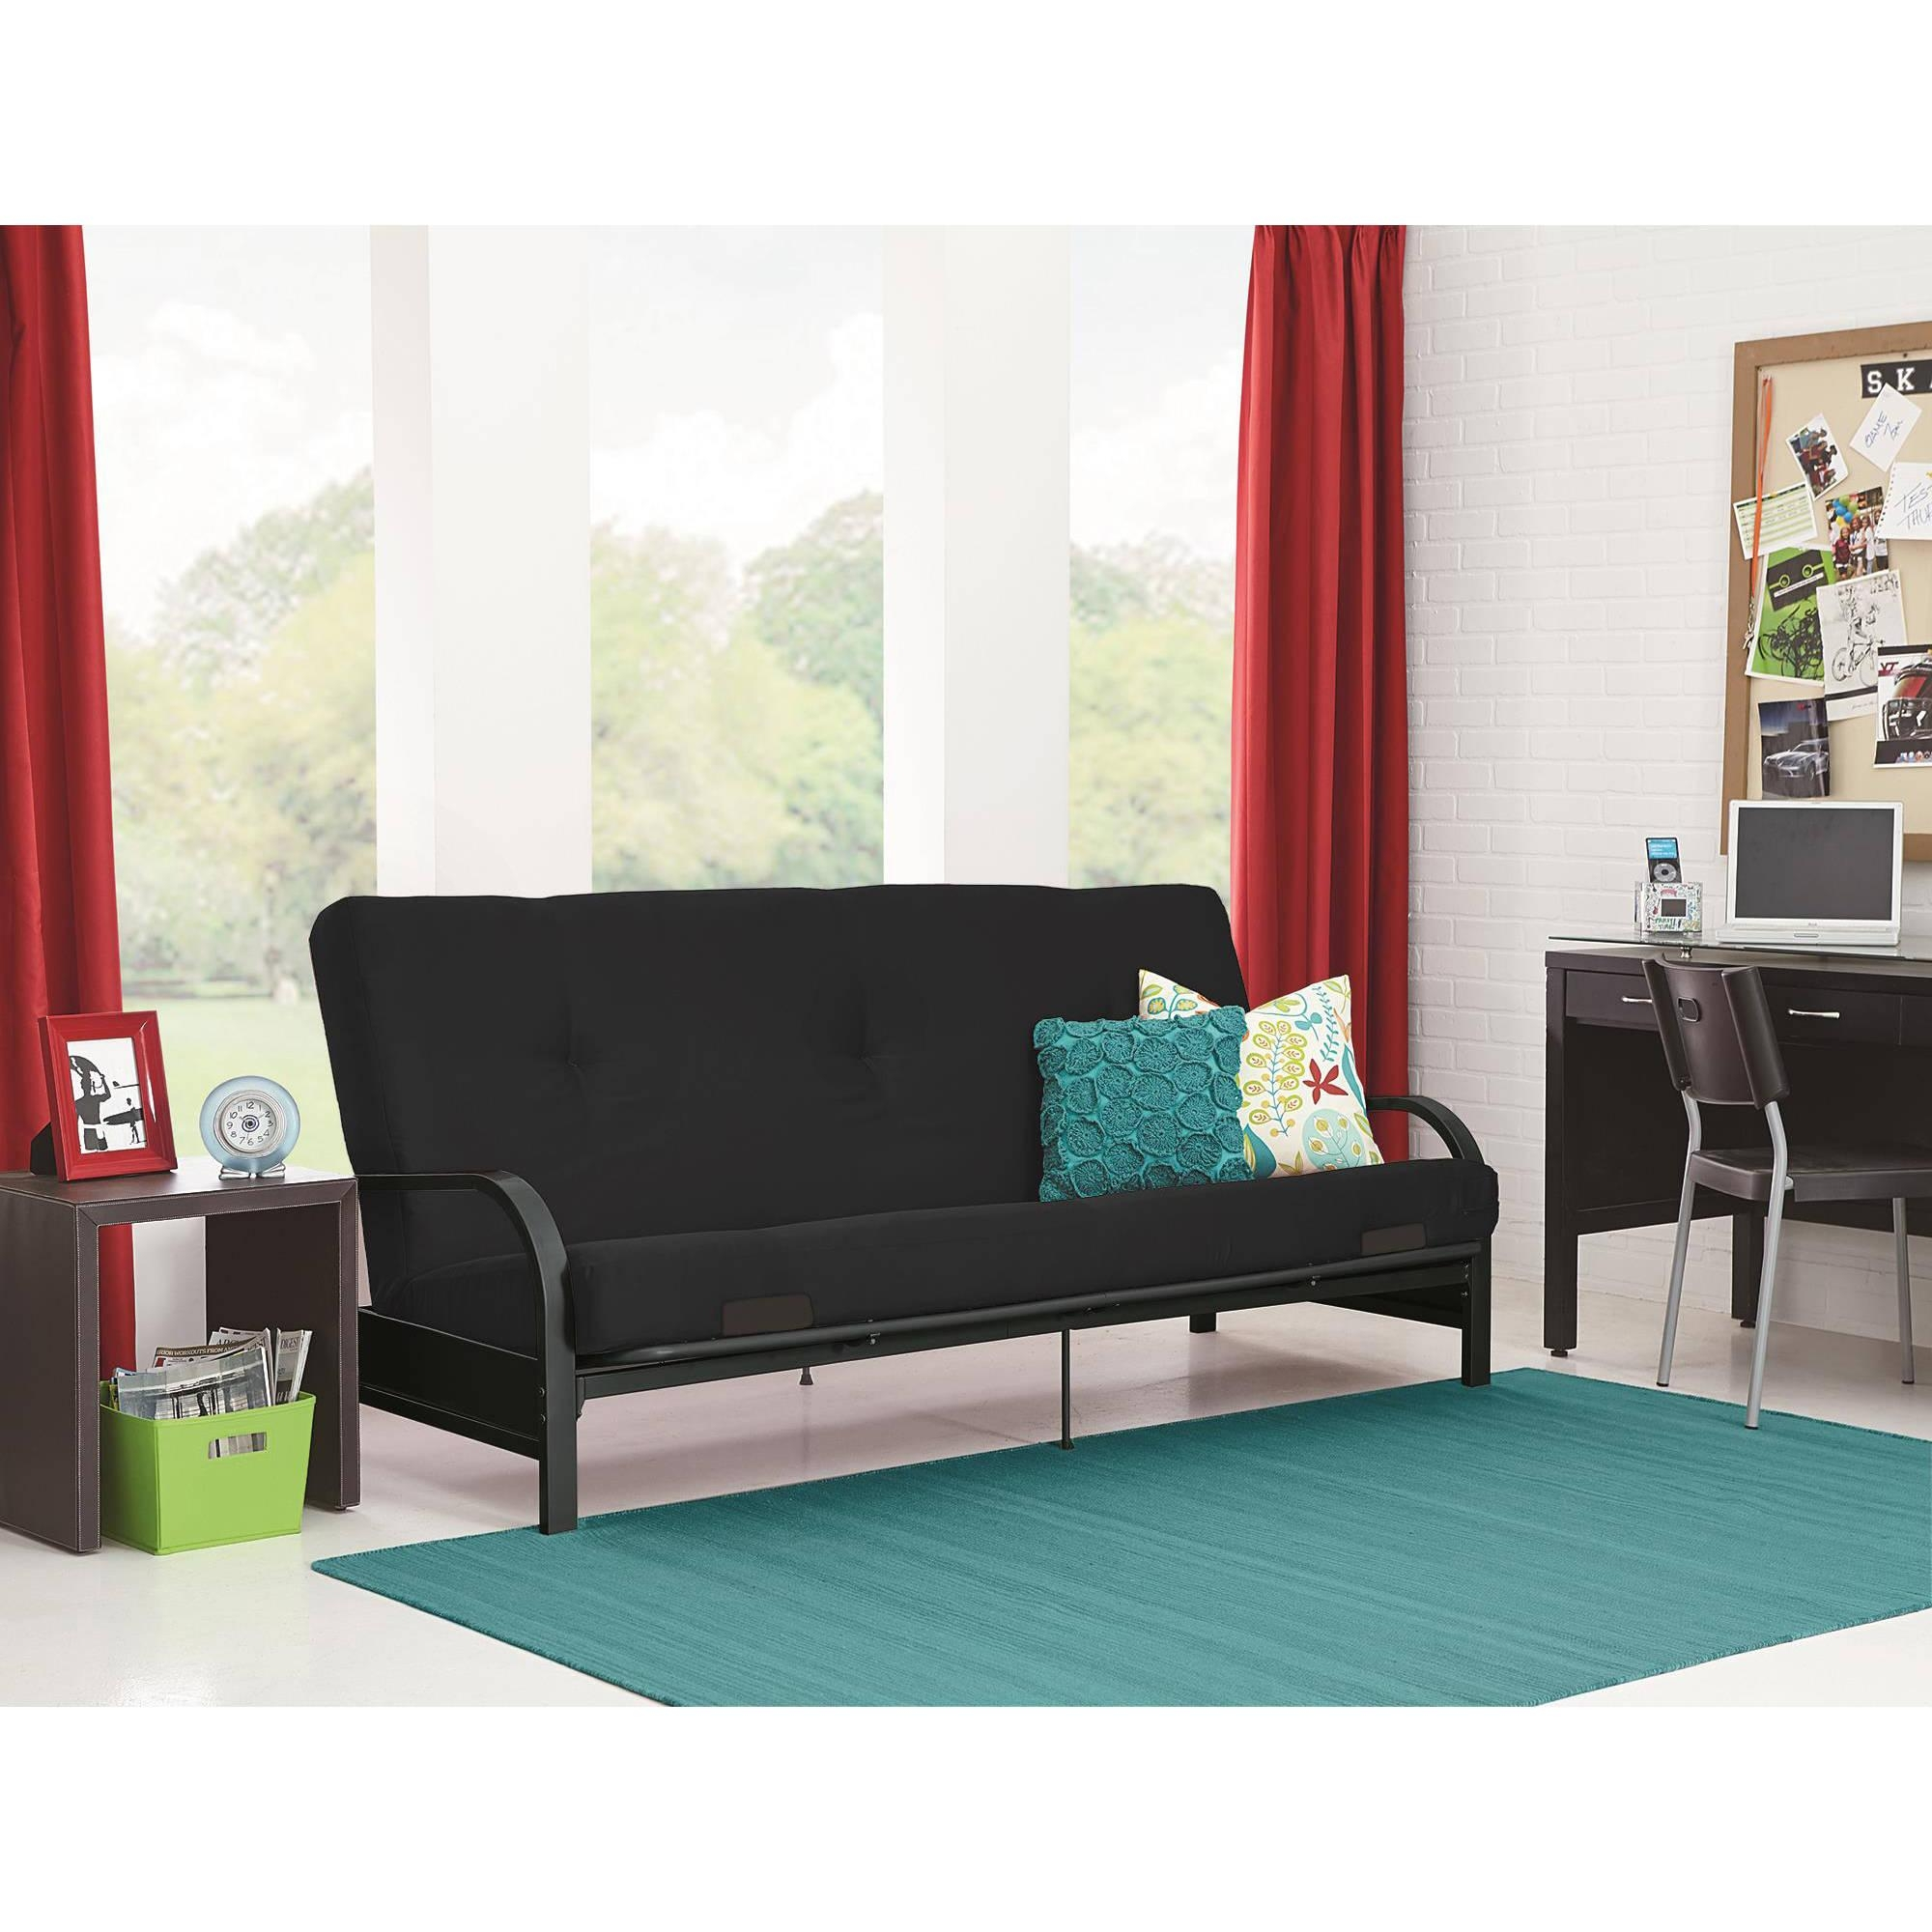 Futons, Futon Beds, Sofa Beds – Walmart For Futon Couch Beds (Image 13 of 20)